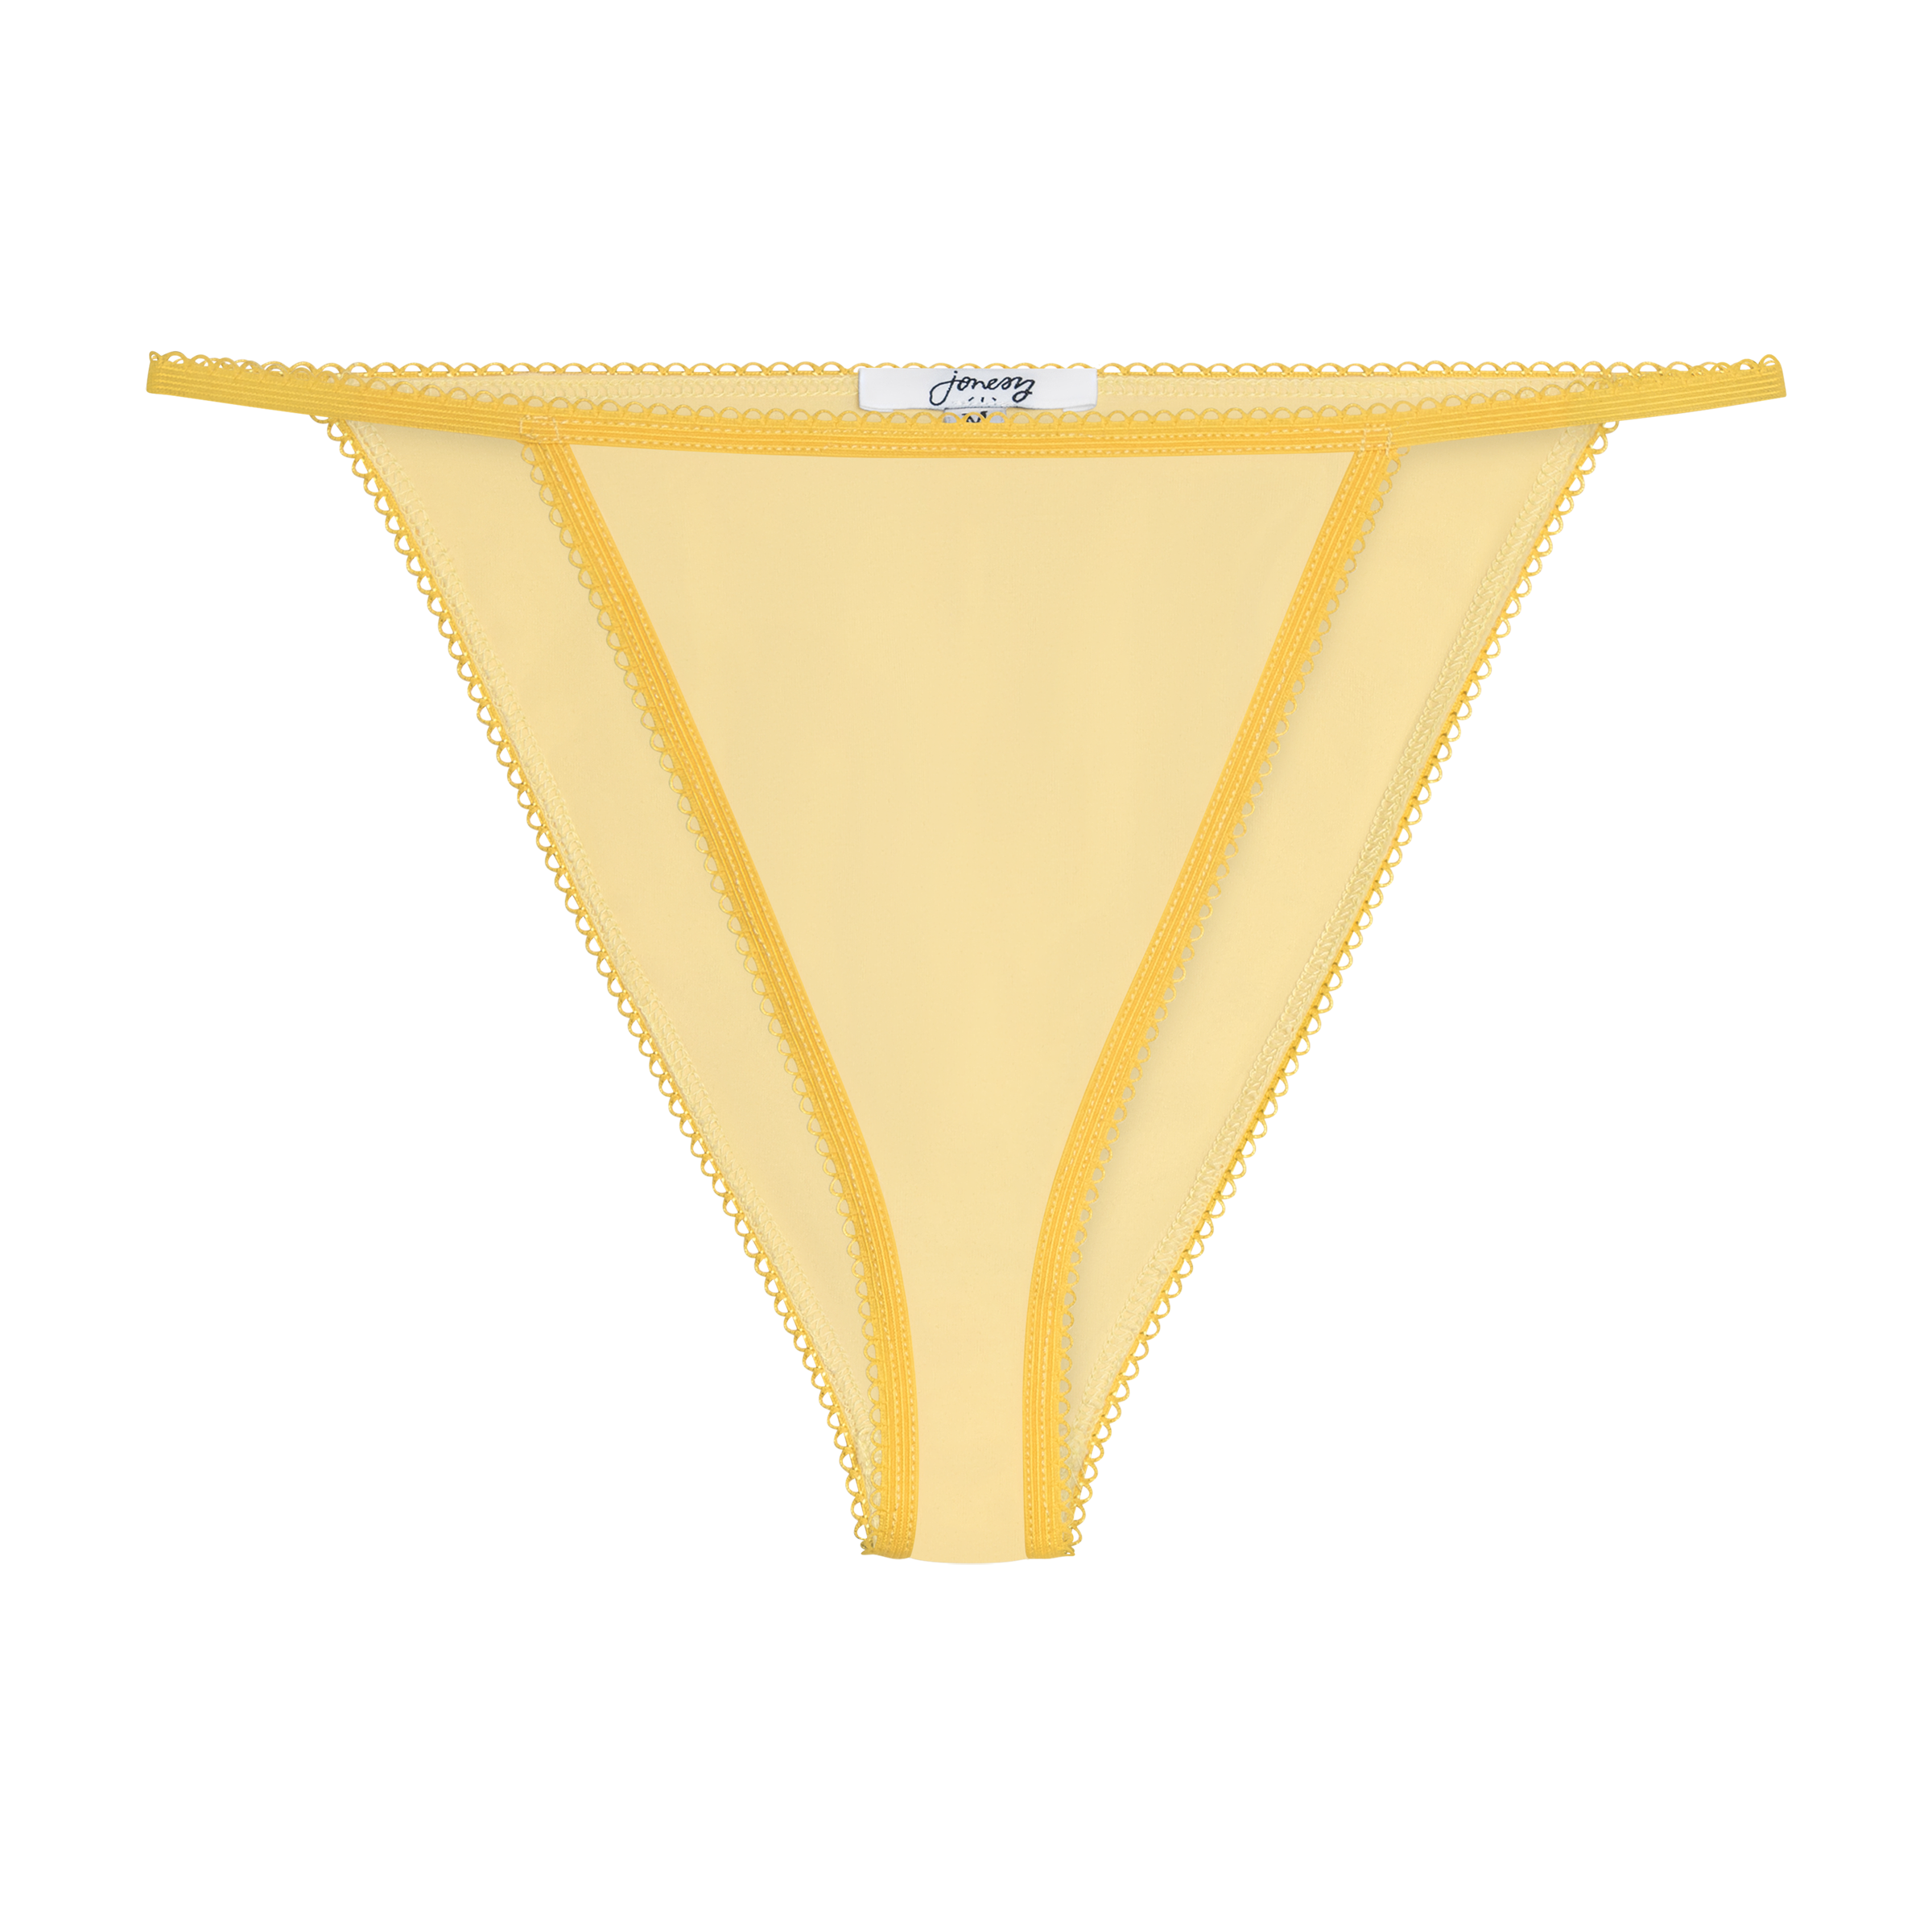 underwear product picture